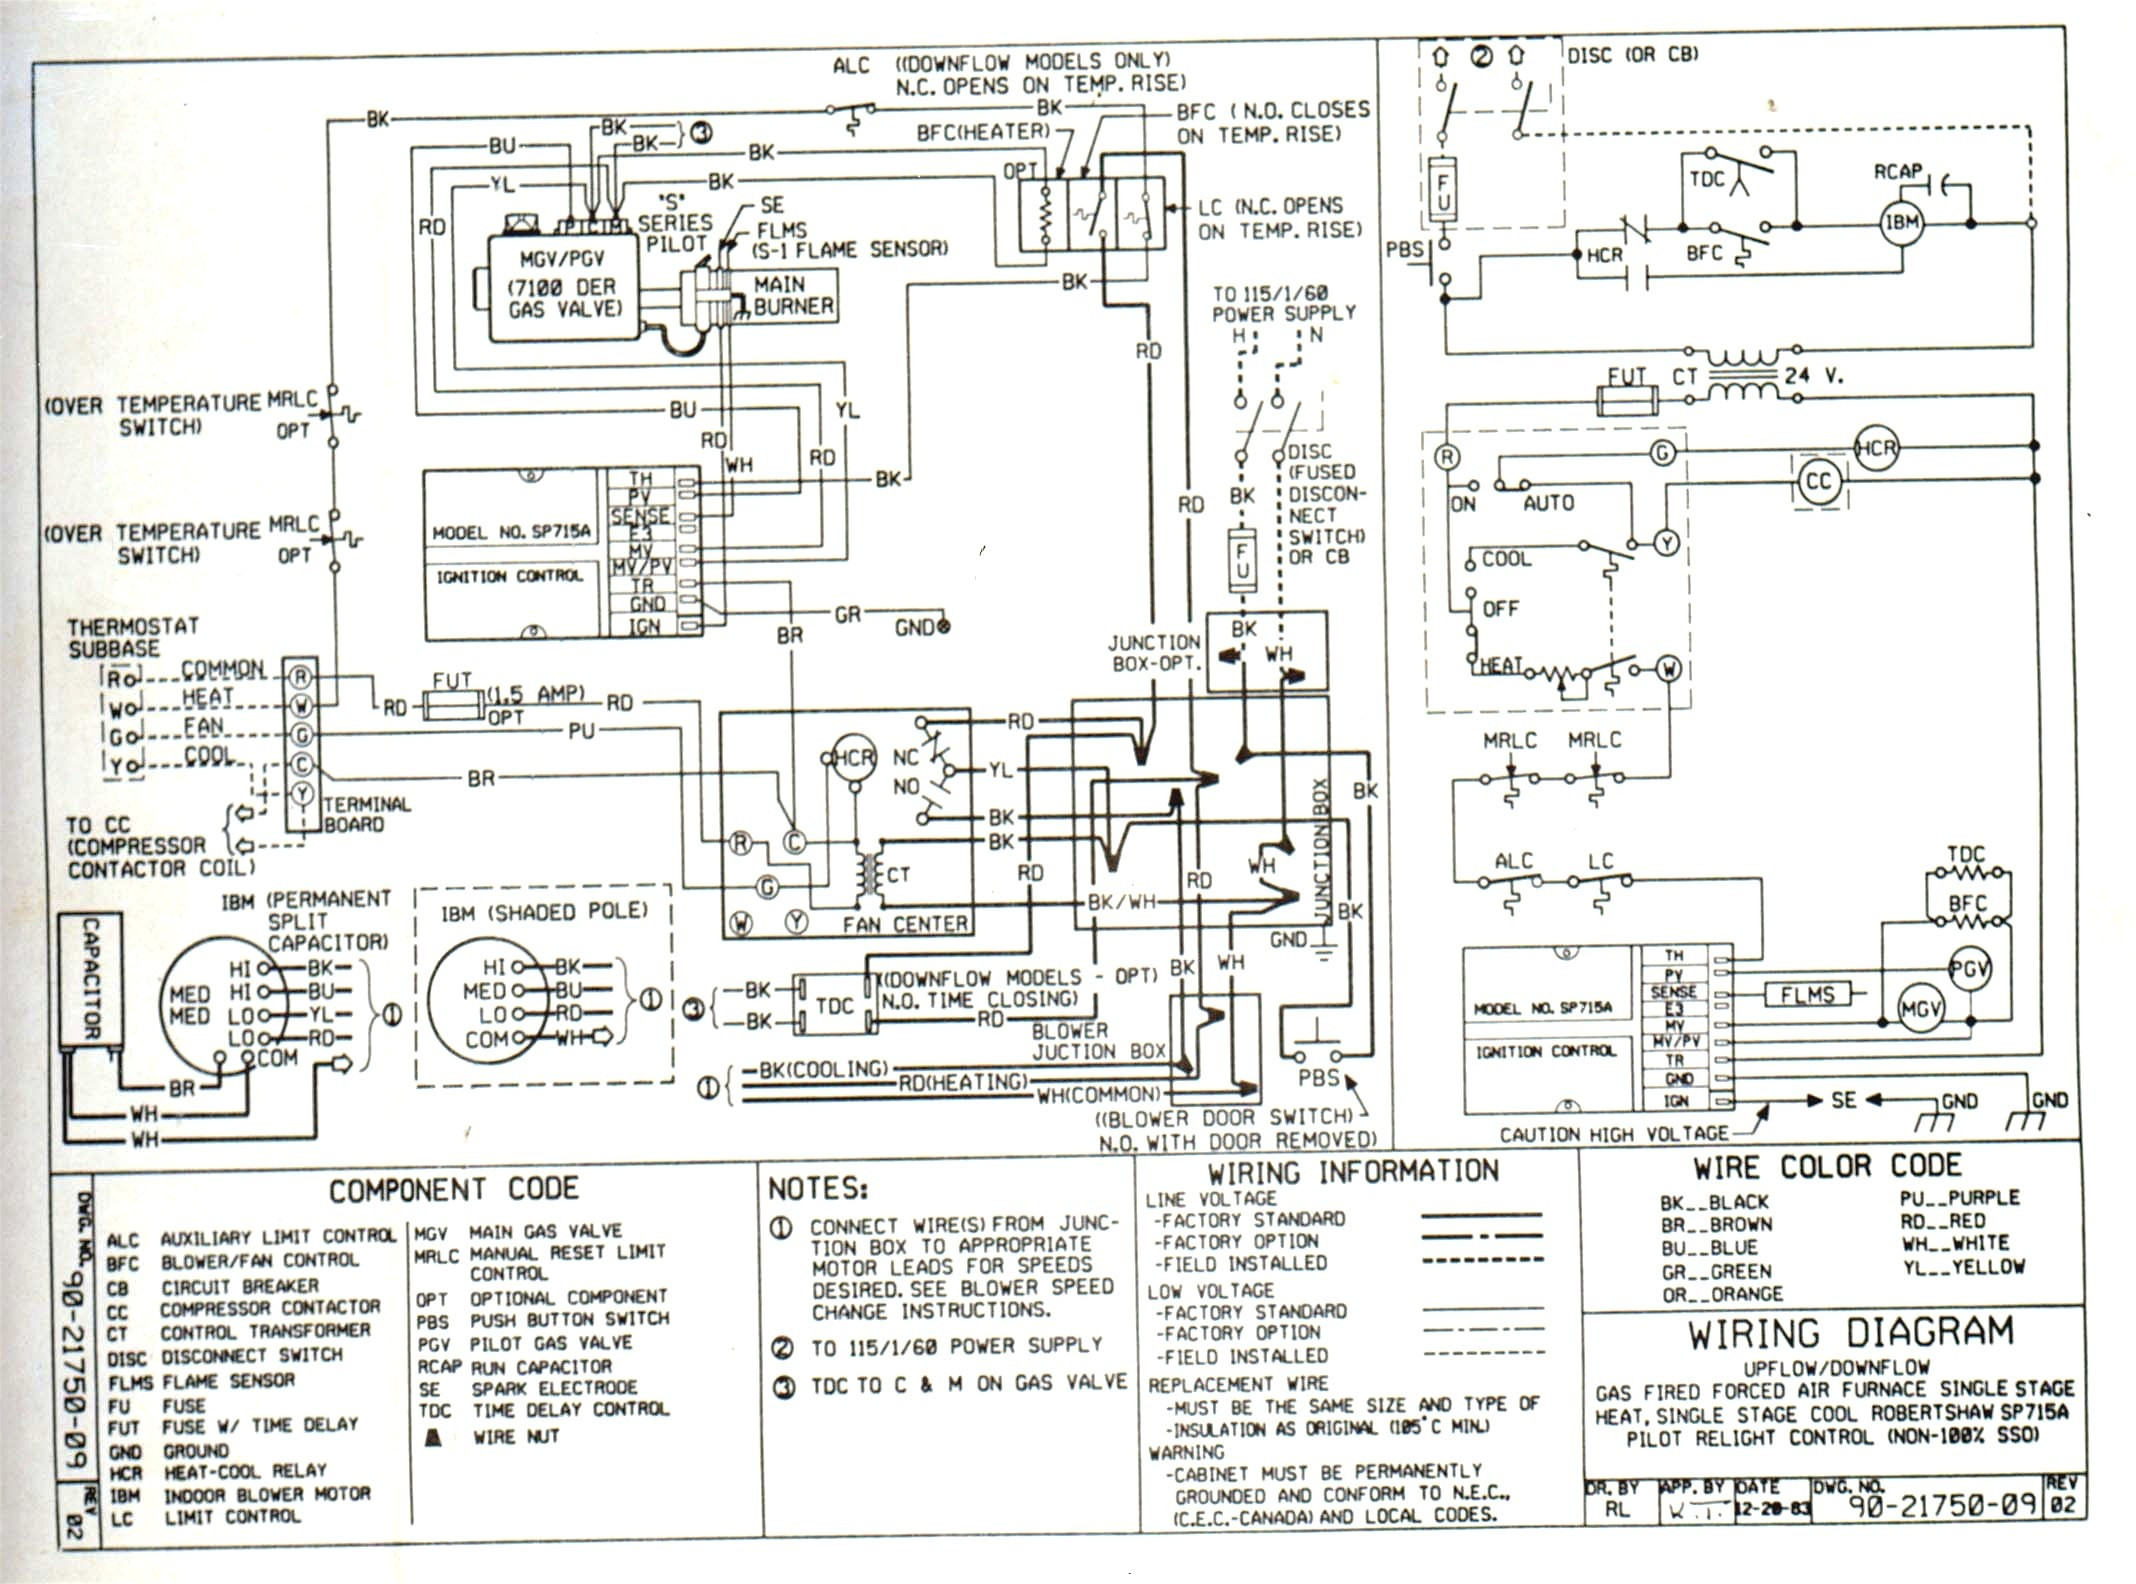 jlg wiring diagrams wiring diagram Jlg E 450 Wiring Schematics jlg wiring diagrams wiring diagram